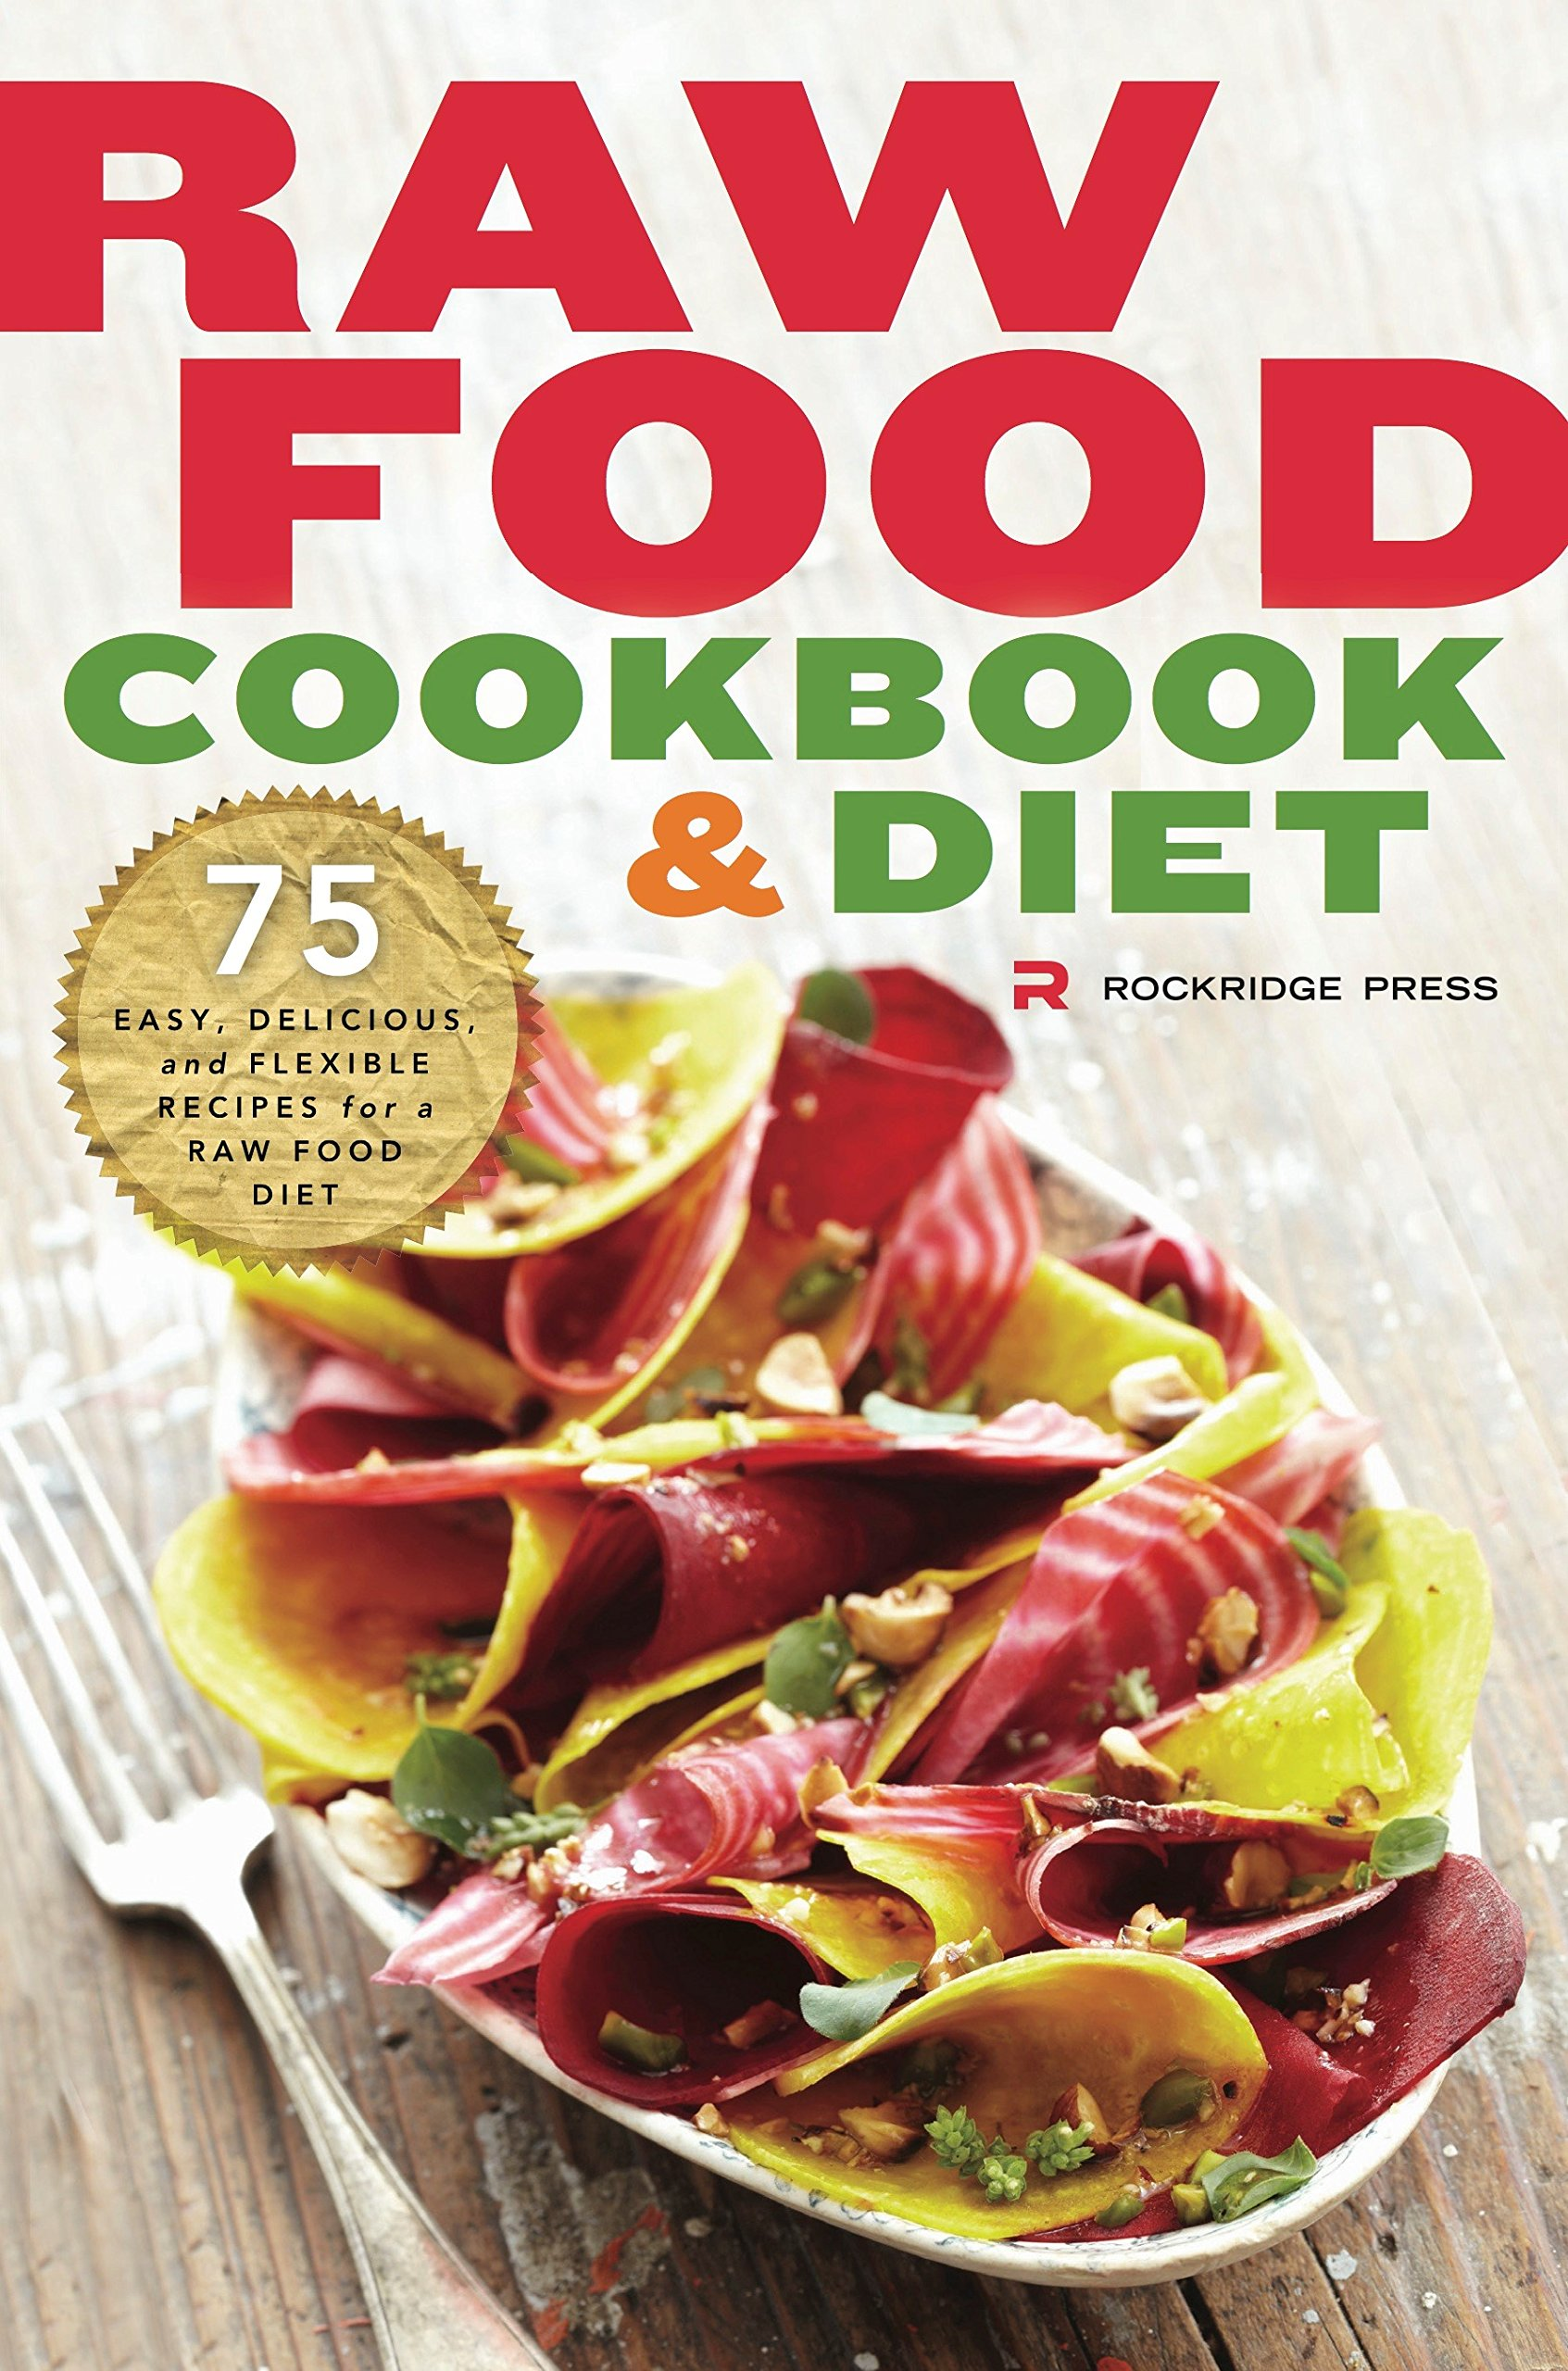 Raw food cookbook and diet 75 easy delicious and flexible recipes raw food cookbook and diet 75 easy delicious and flexible recipes for a raw food diet rockridge press 9781623152413 amazon books forumfinder Choice Image